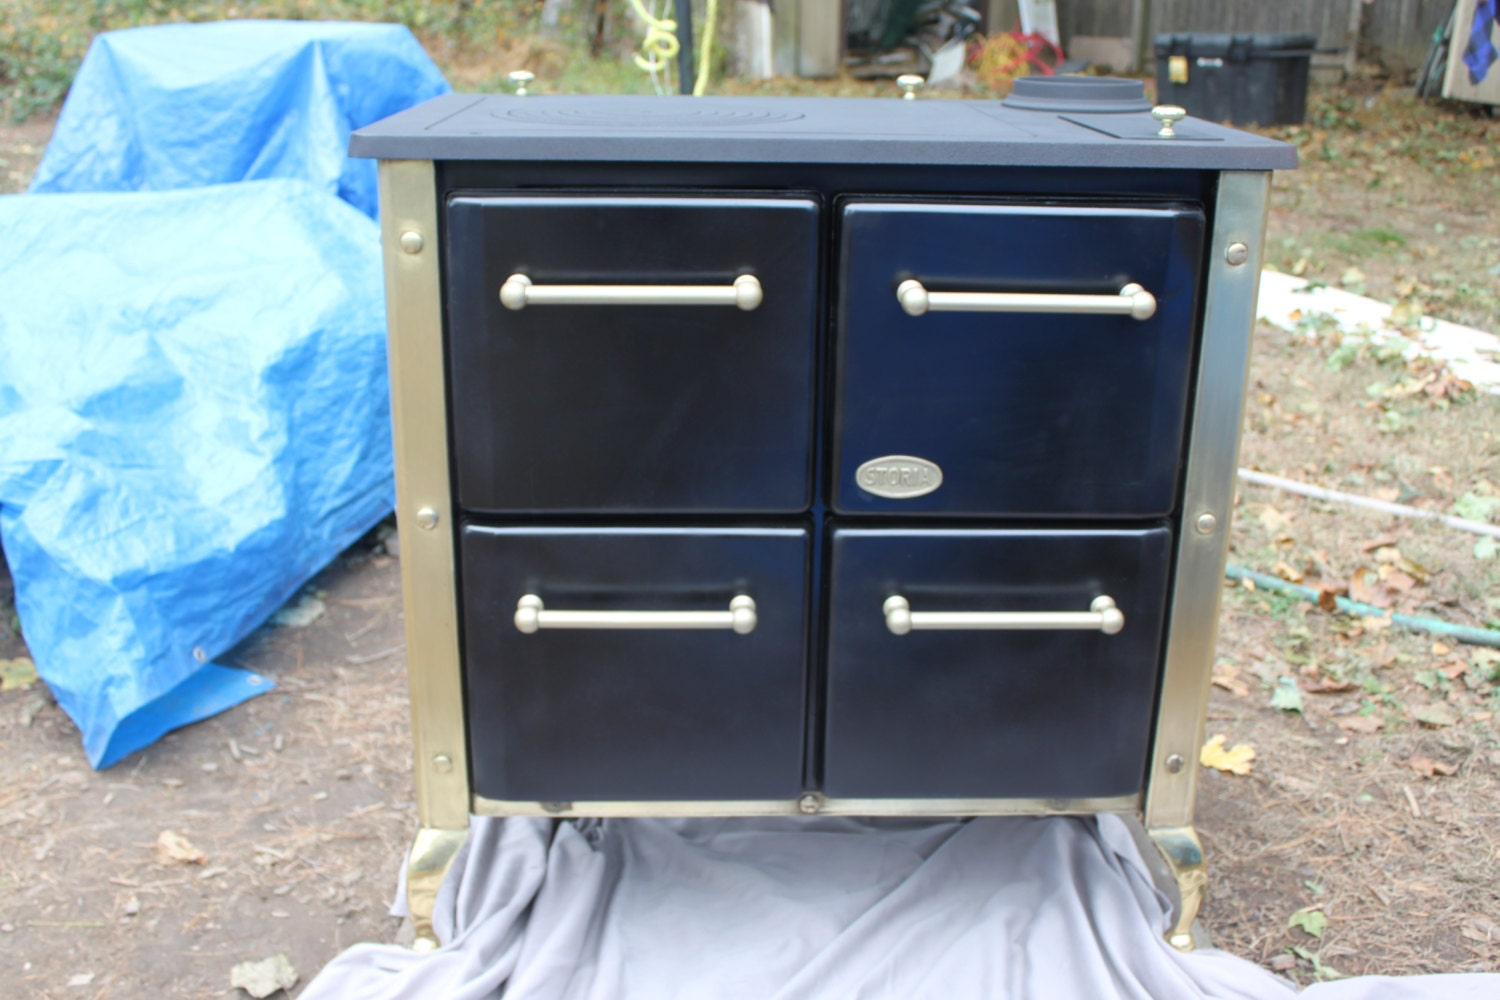 storia italian coal cook stove bake oven by specialwoodcoalstove. Black Bedroom Furniture Sets. Home Design Ideas